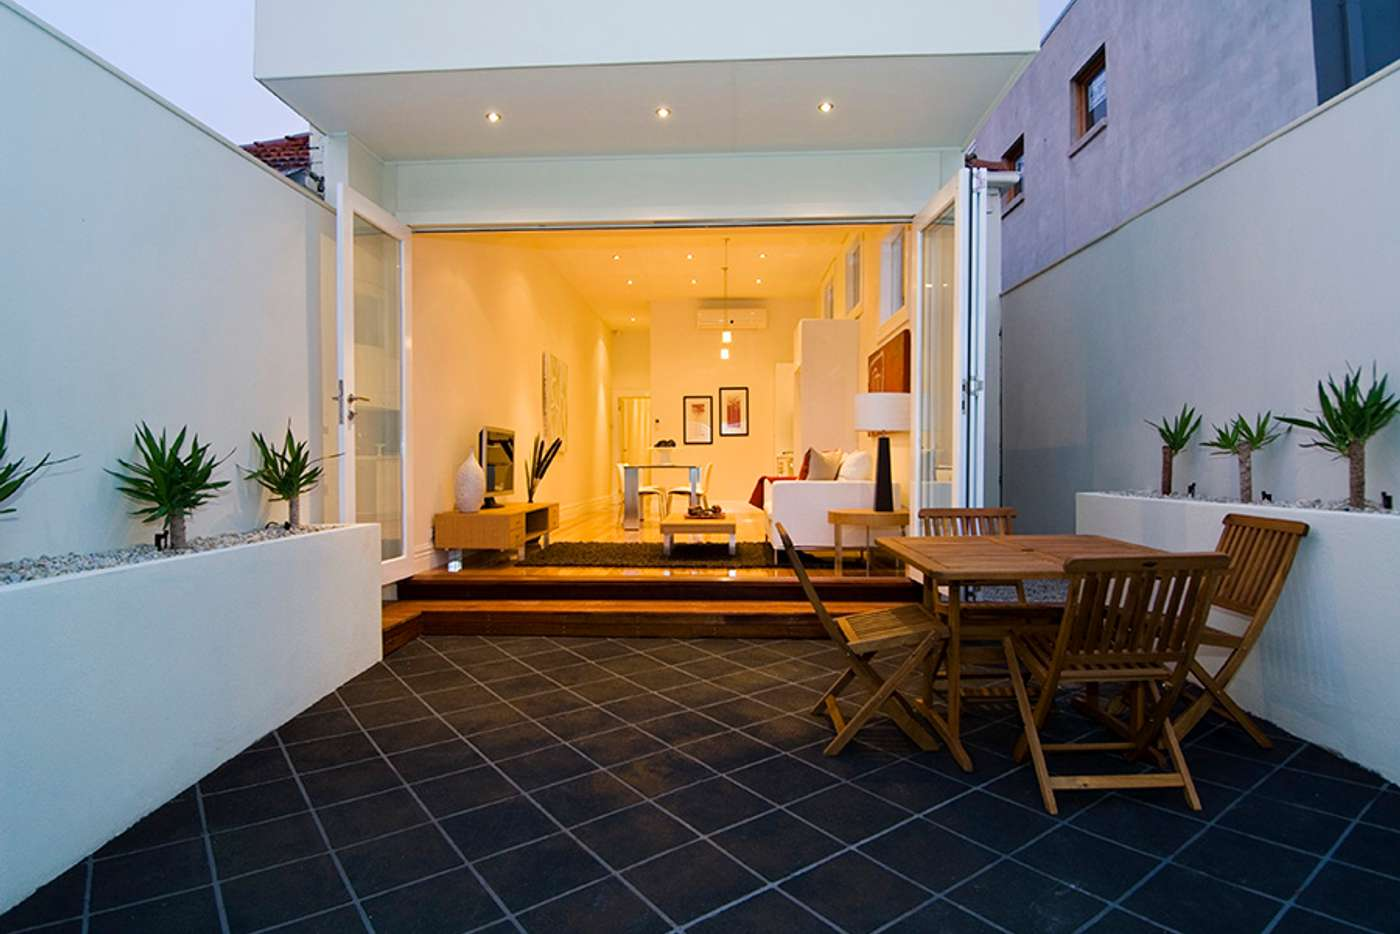 Main view of Homely house listing, 50 Crockford Street, Port Melbourne VIC 3207